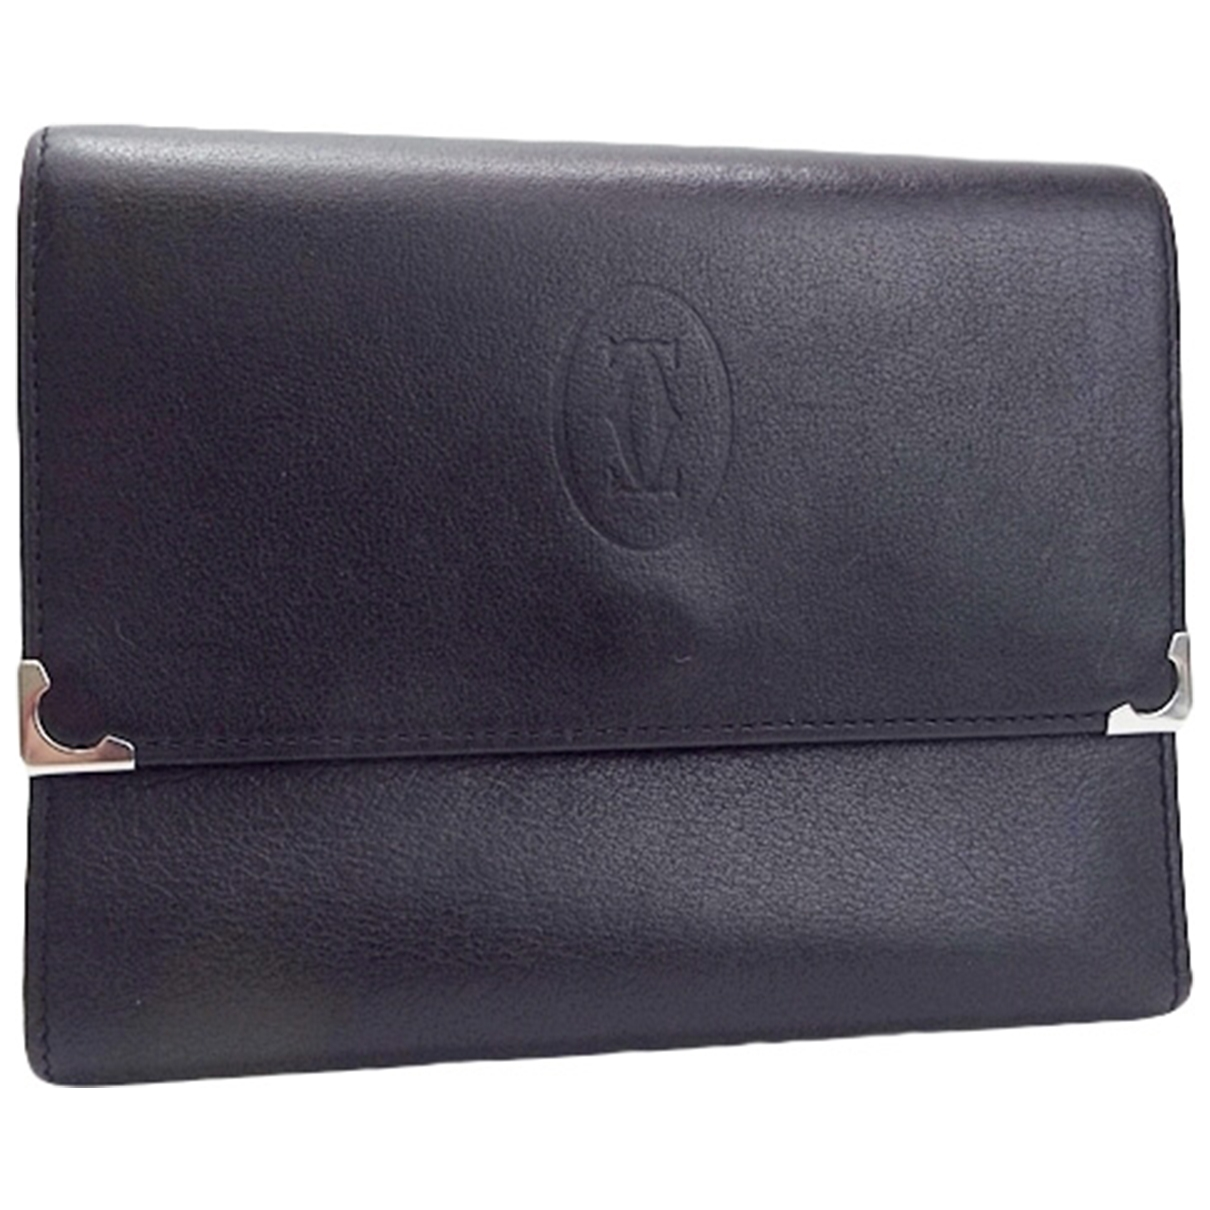 Cartier \N Black Leather wallet for Women \N